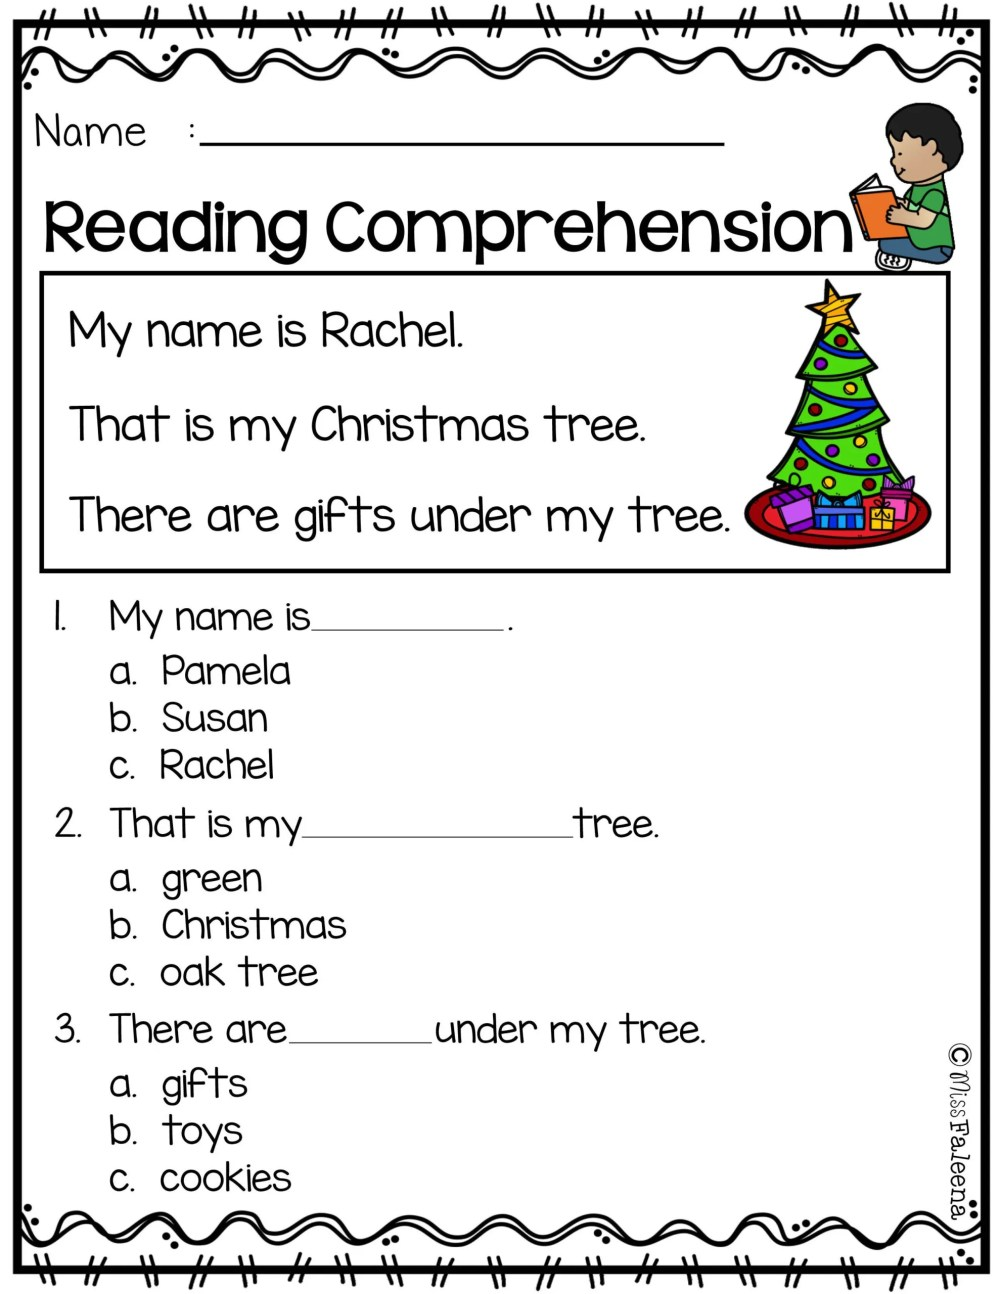 medium resolution of 5th Grade Christmas Language Worksheets   Printable Worksheets and  Activities for Teachers